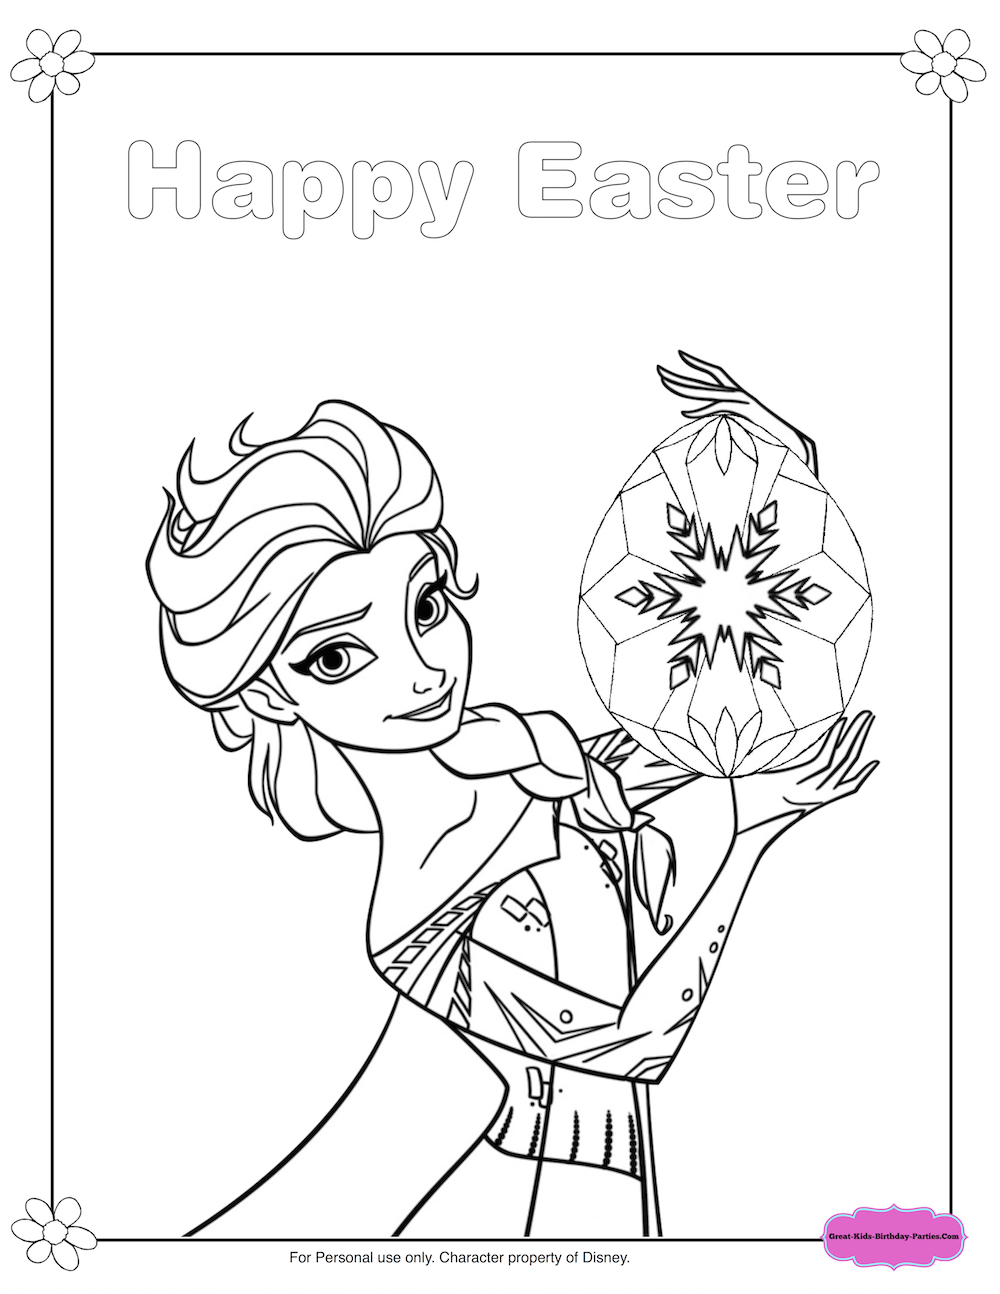 frozen elsa and olaf easter coloring pages fun easter printables for kids - Resurrection Coloring Pages Print